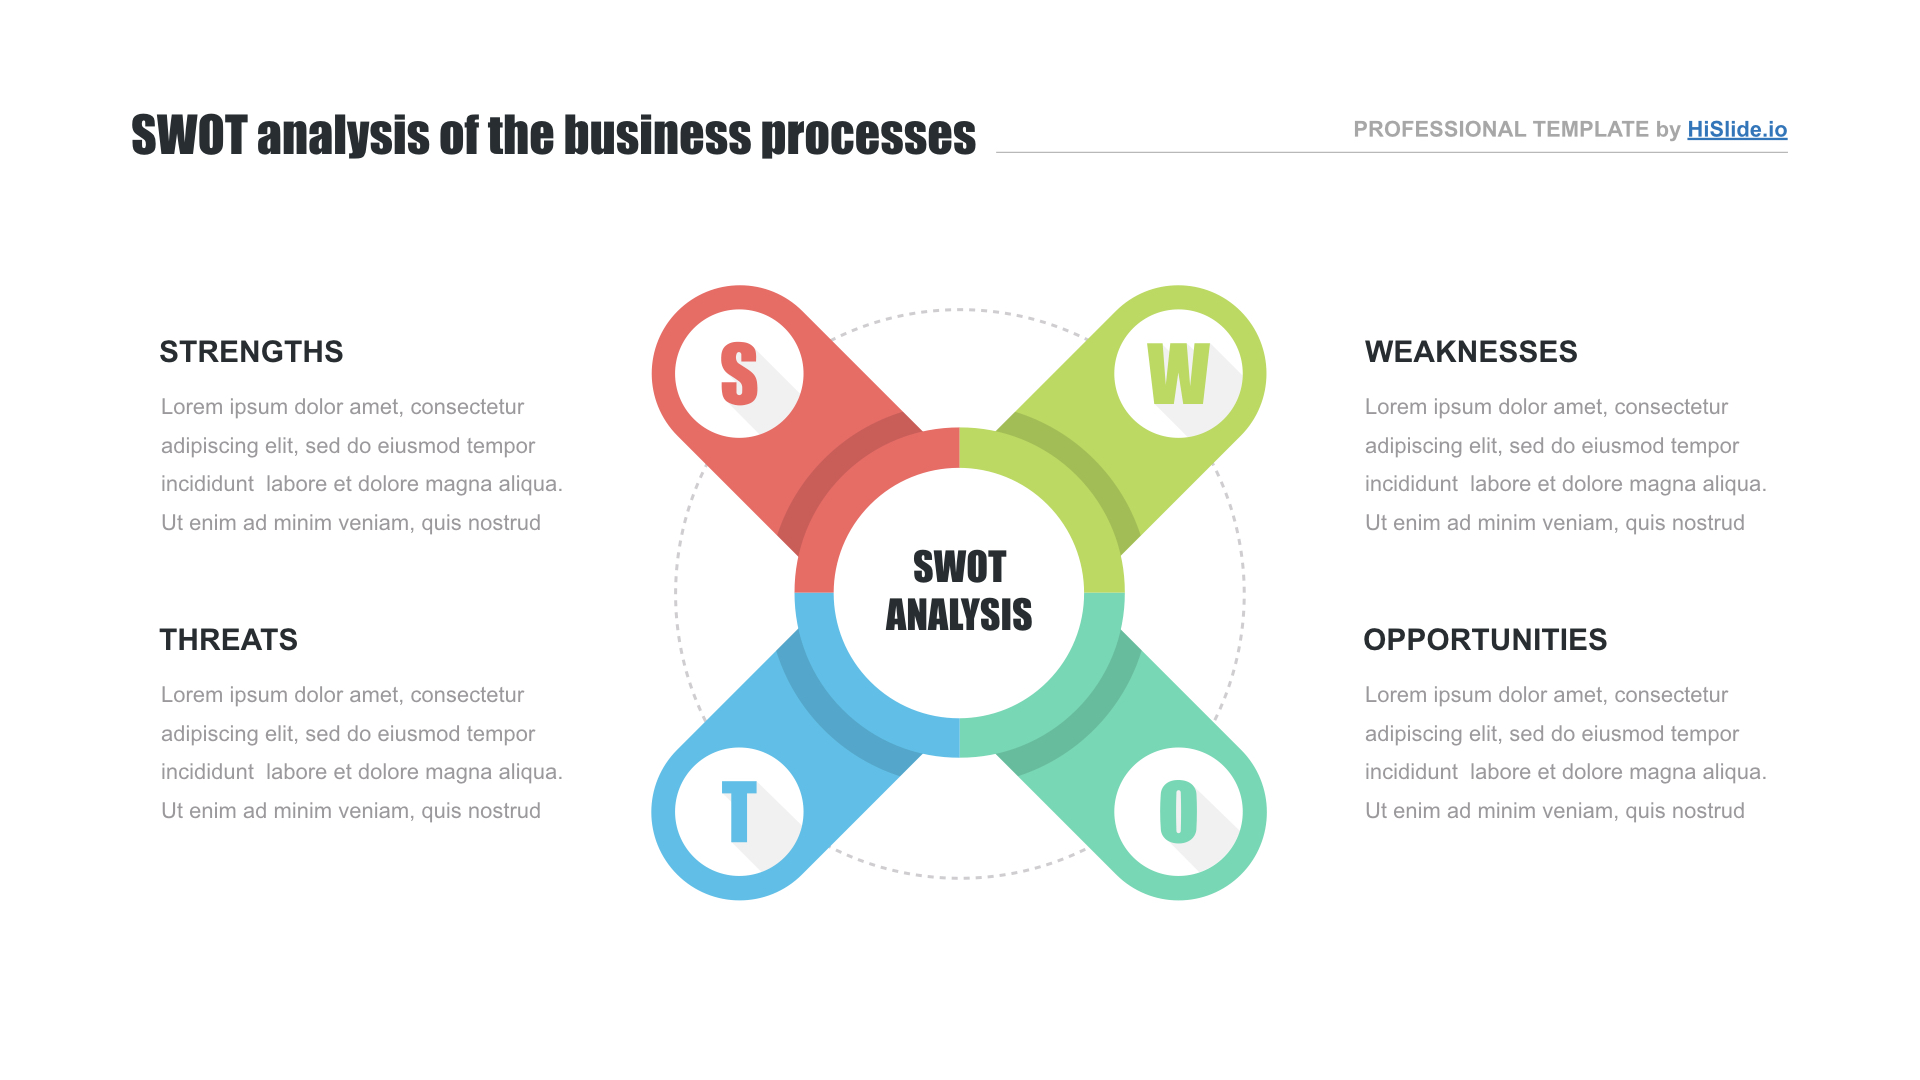 SWOT analysis PowerPoint, Keynote, Google Slides slide template